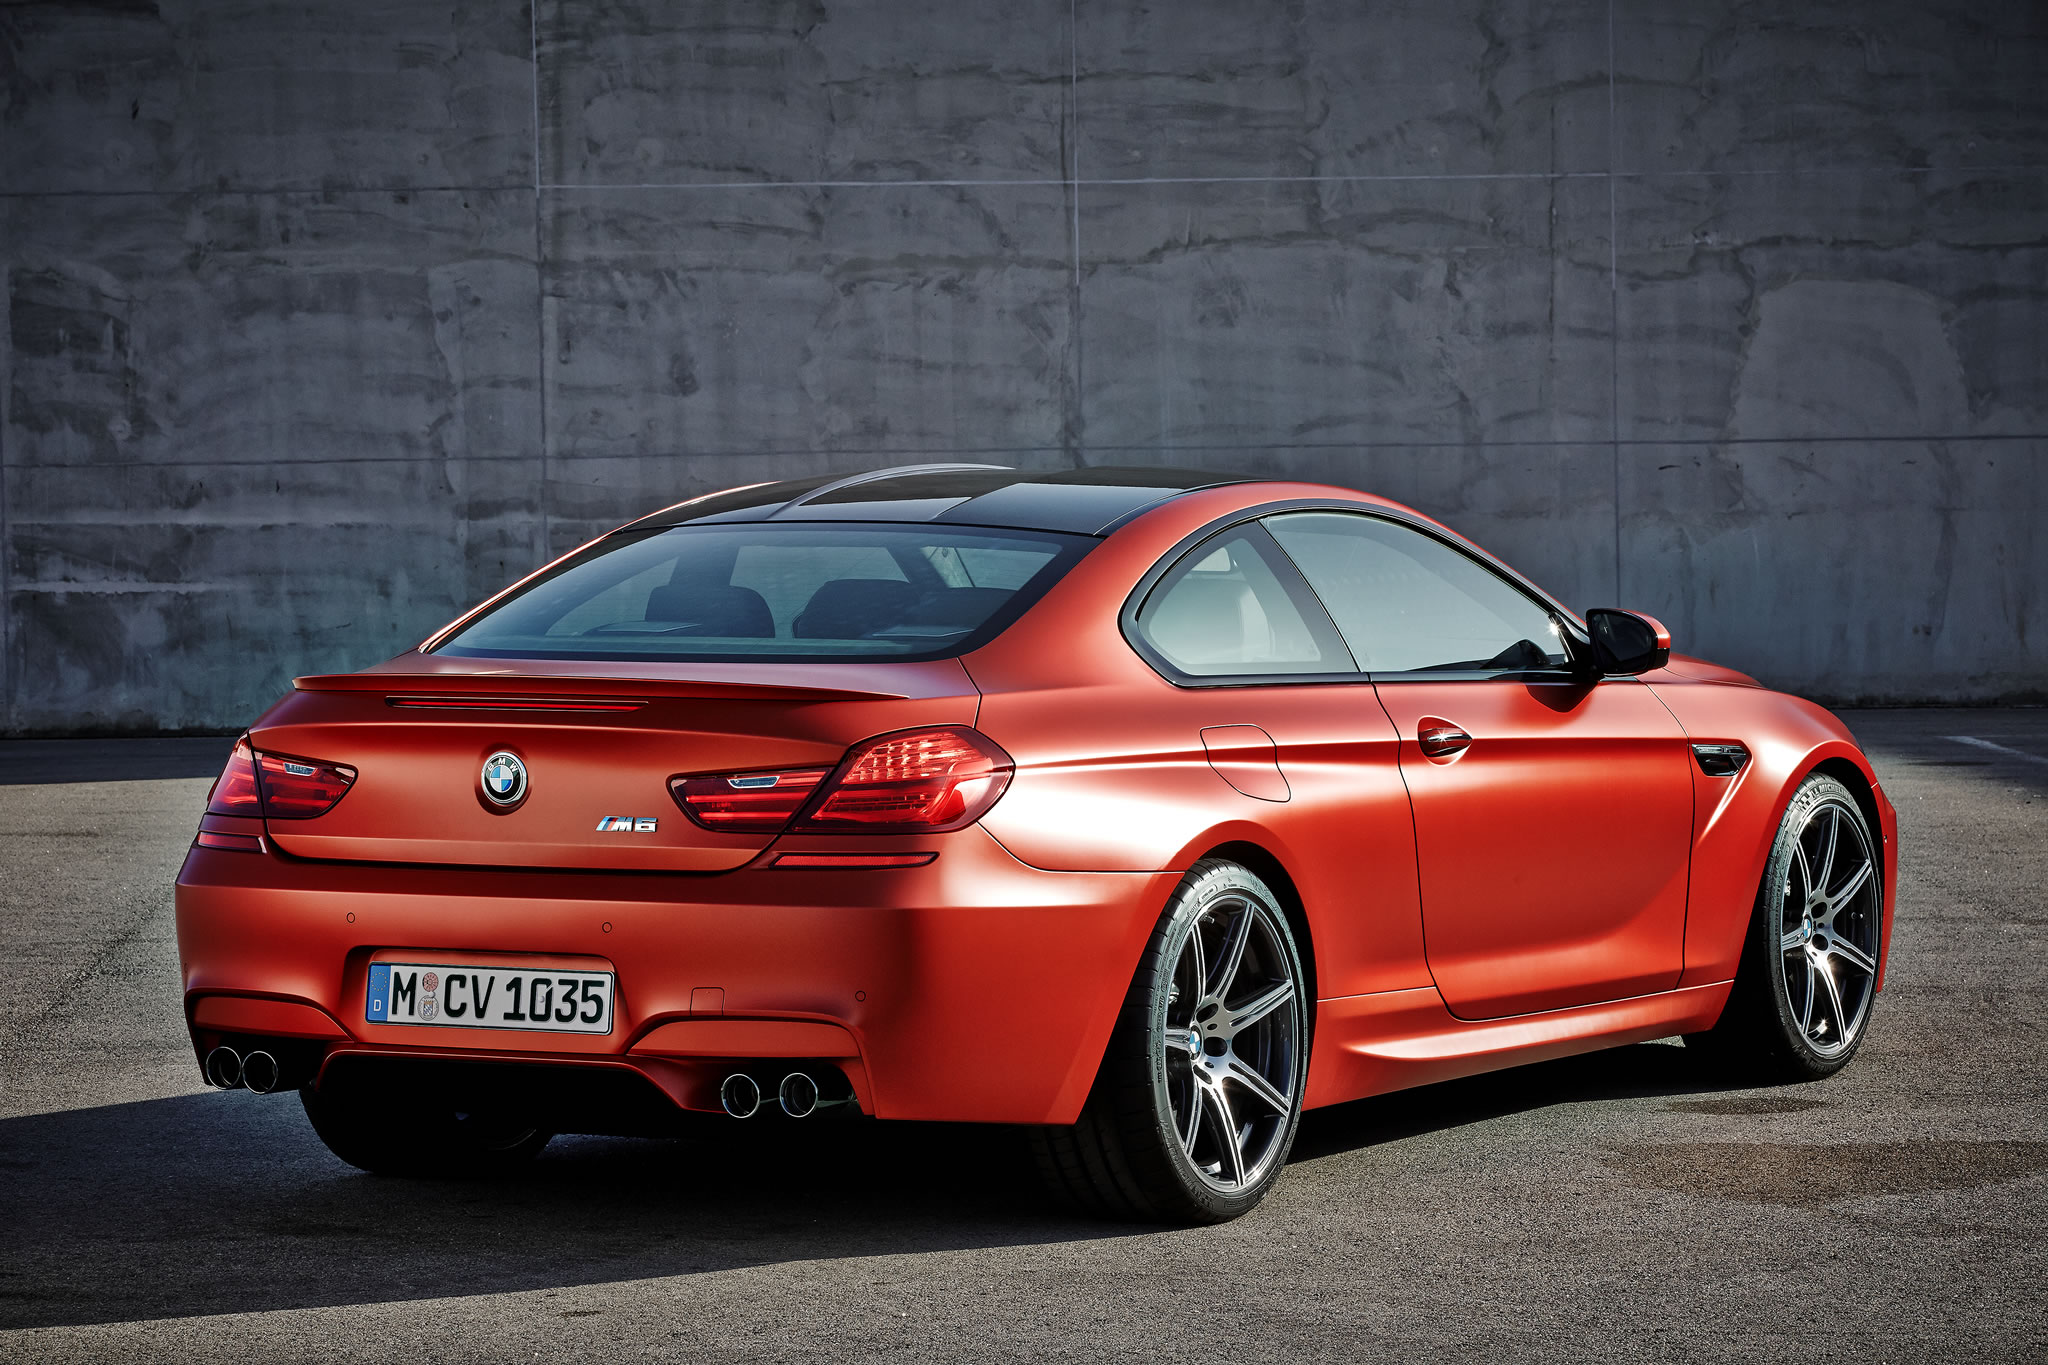 2016 Bmw M6 Coupe Rear Photo Frozen Red Paint Size